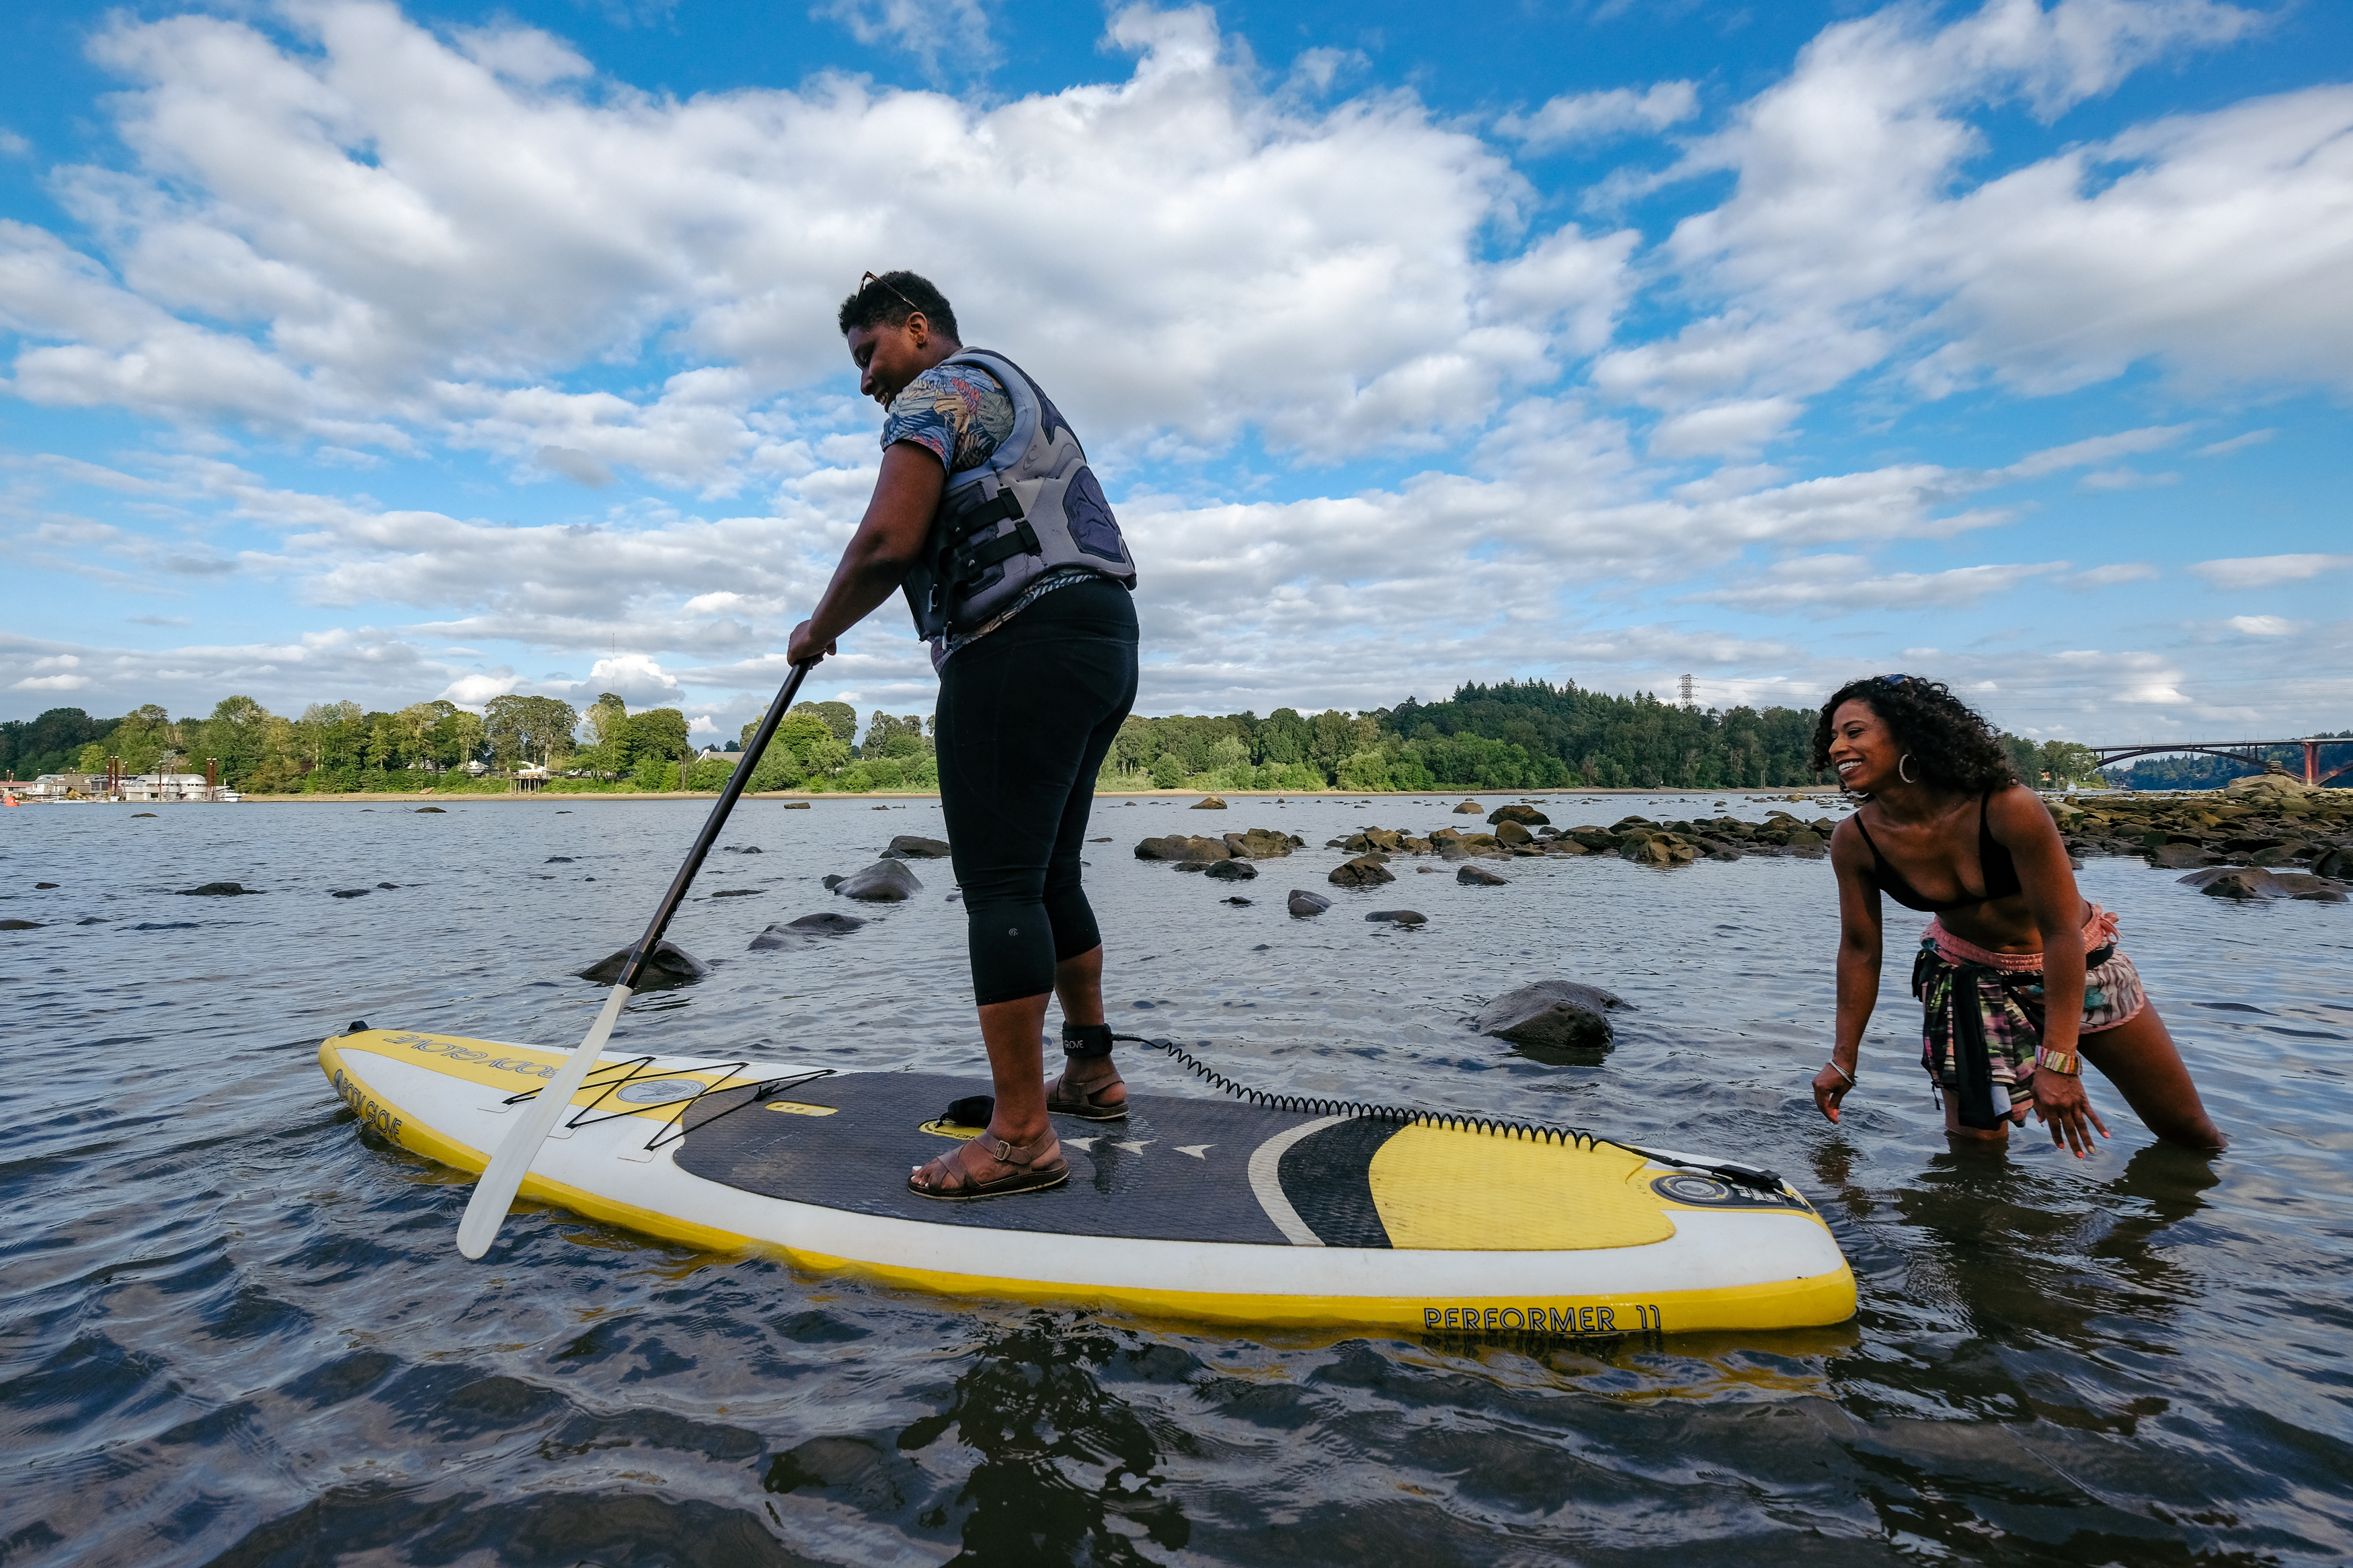 A woman pilots a stand-up paddleboard in a river, with another woman looking on